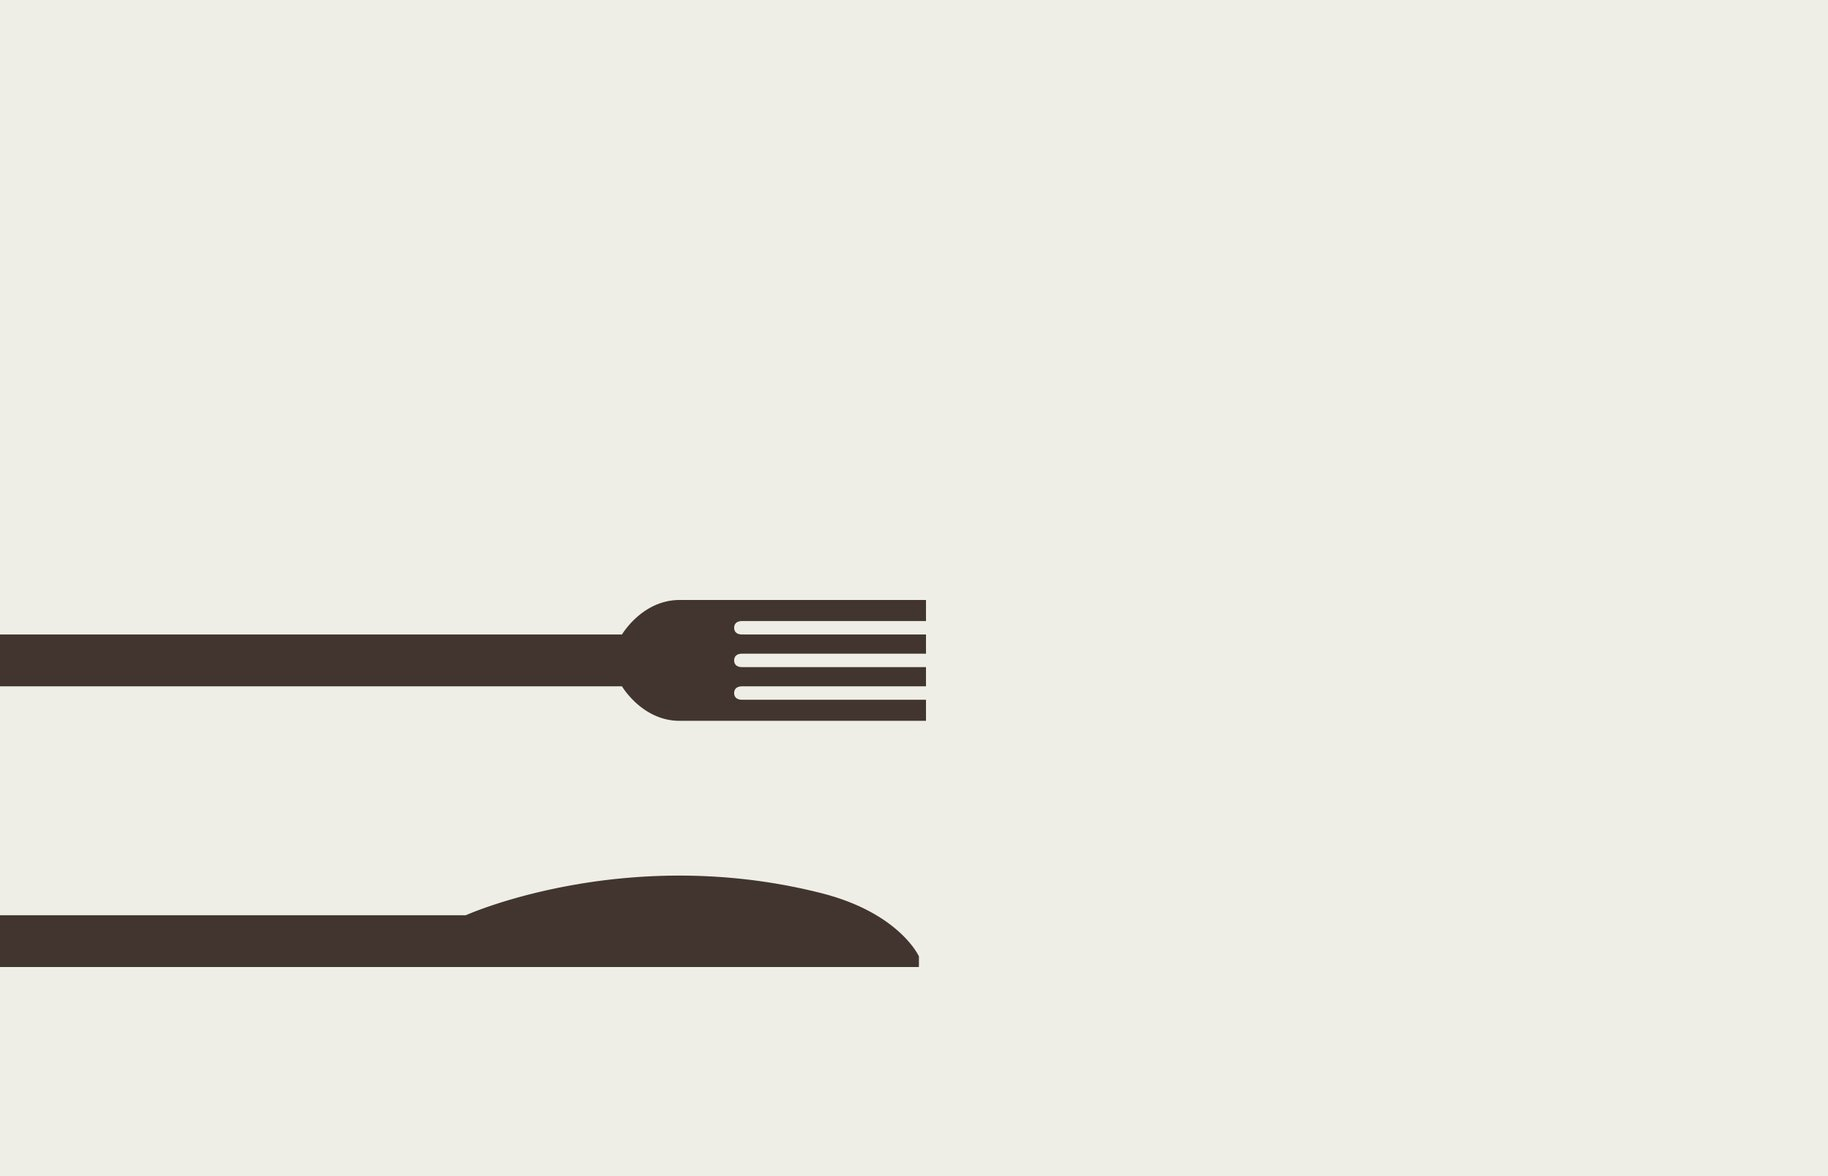 My Main Course Knife & Fork Graphic